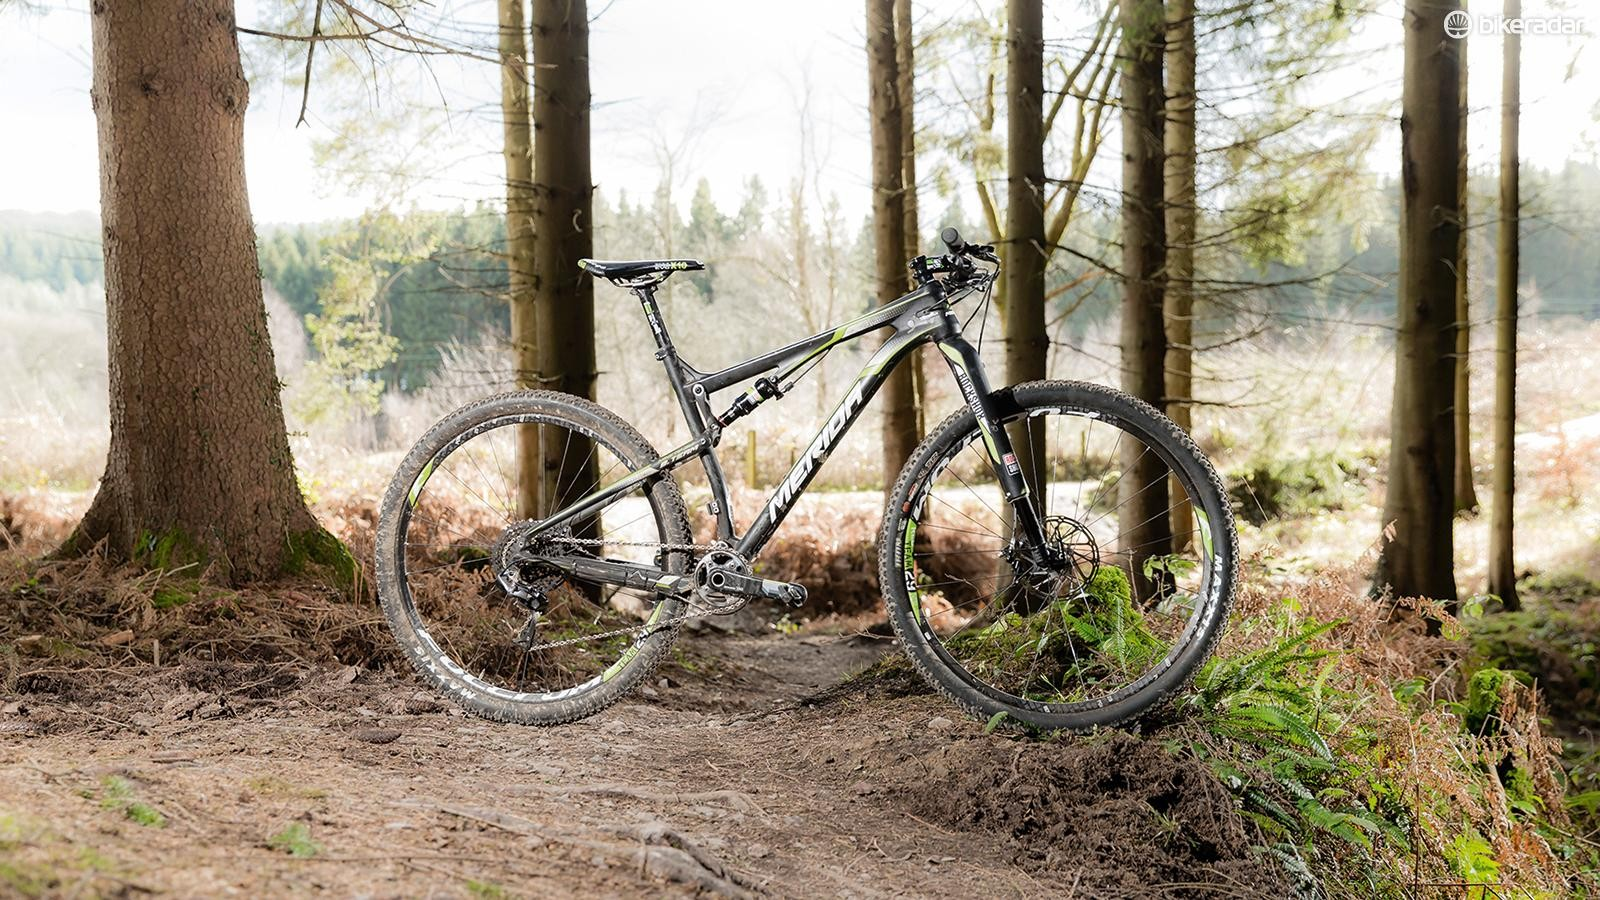 With World Champs podium pedigree, the Ninety-Six is one flat-out fast XC ride